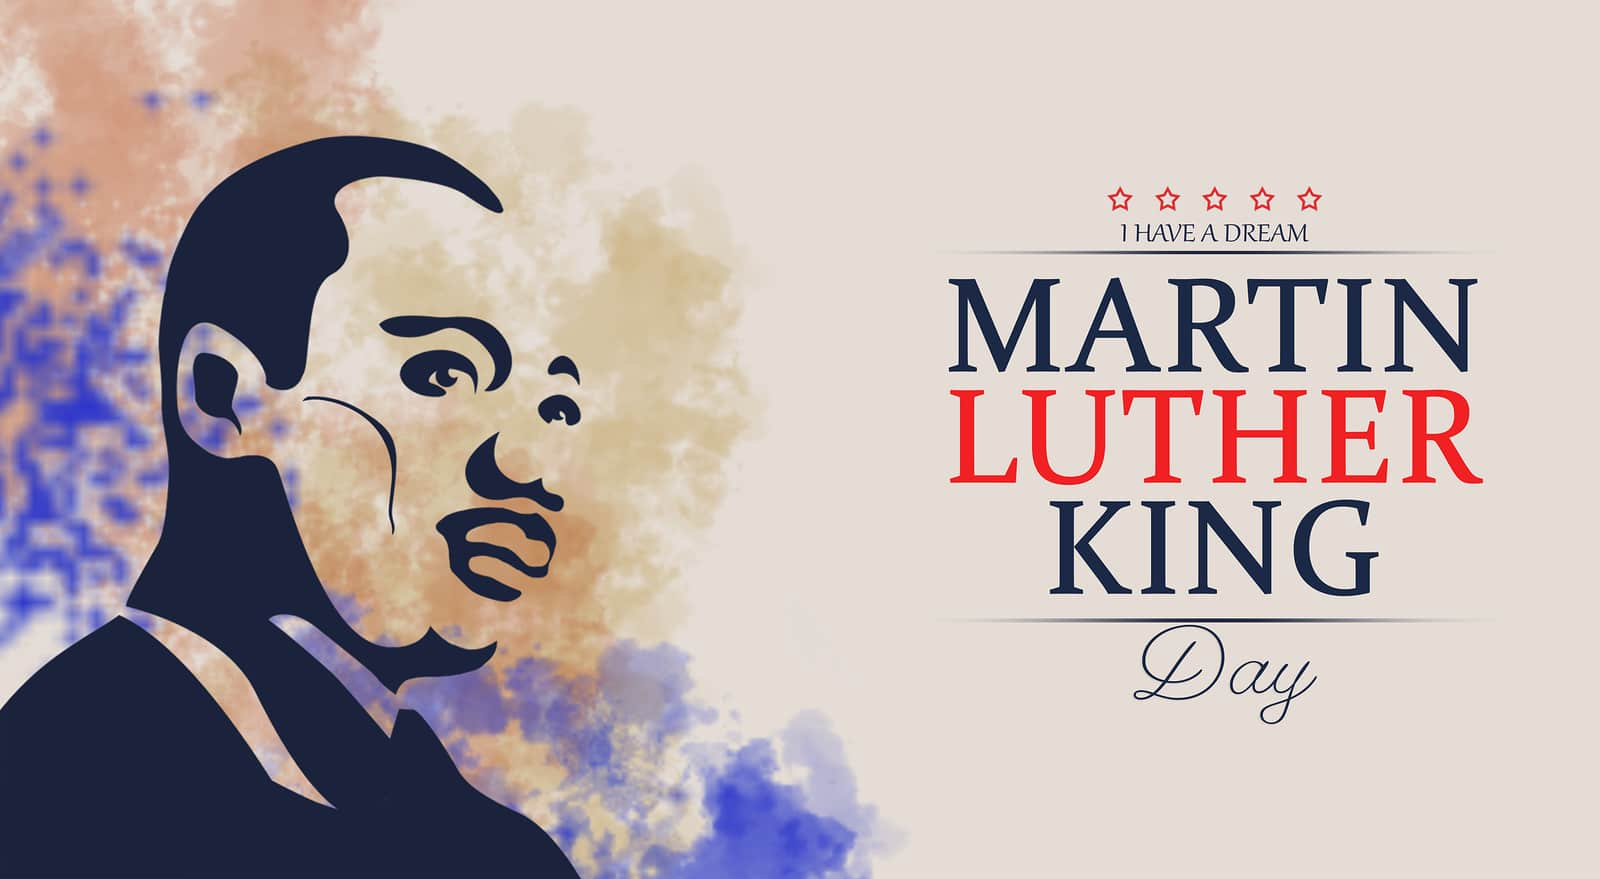 martin luther king jr day - photo #15